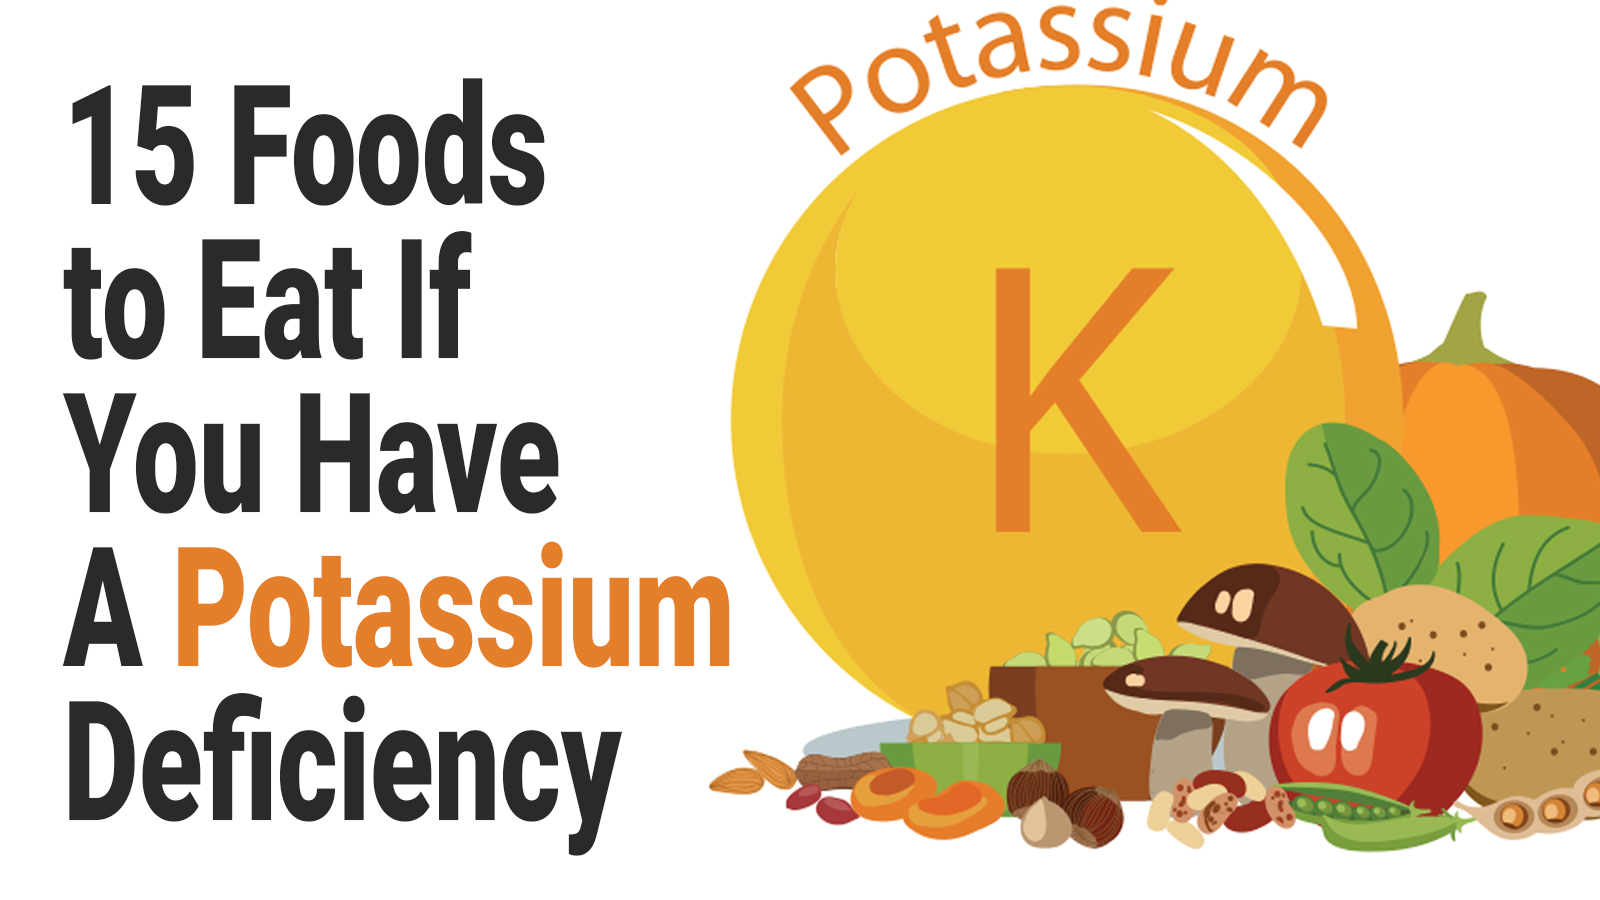 15 Foods to Eat If You Have A Potassium Deficiency